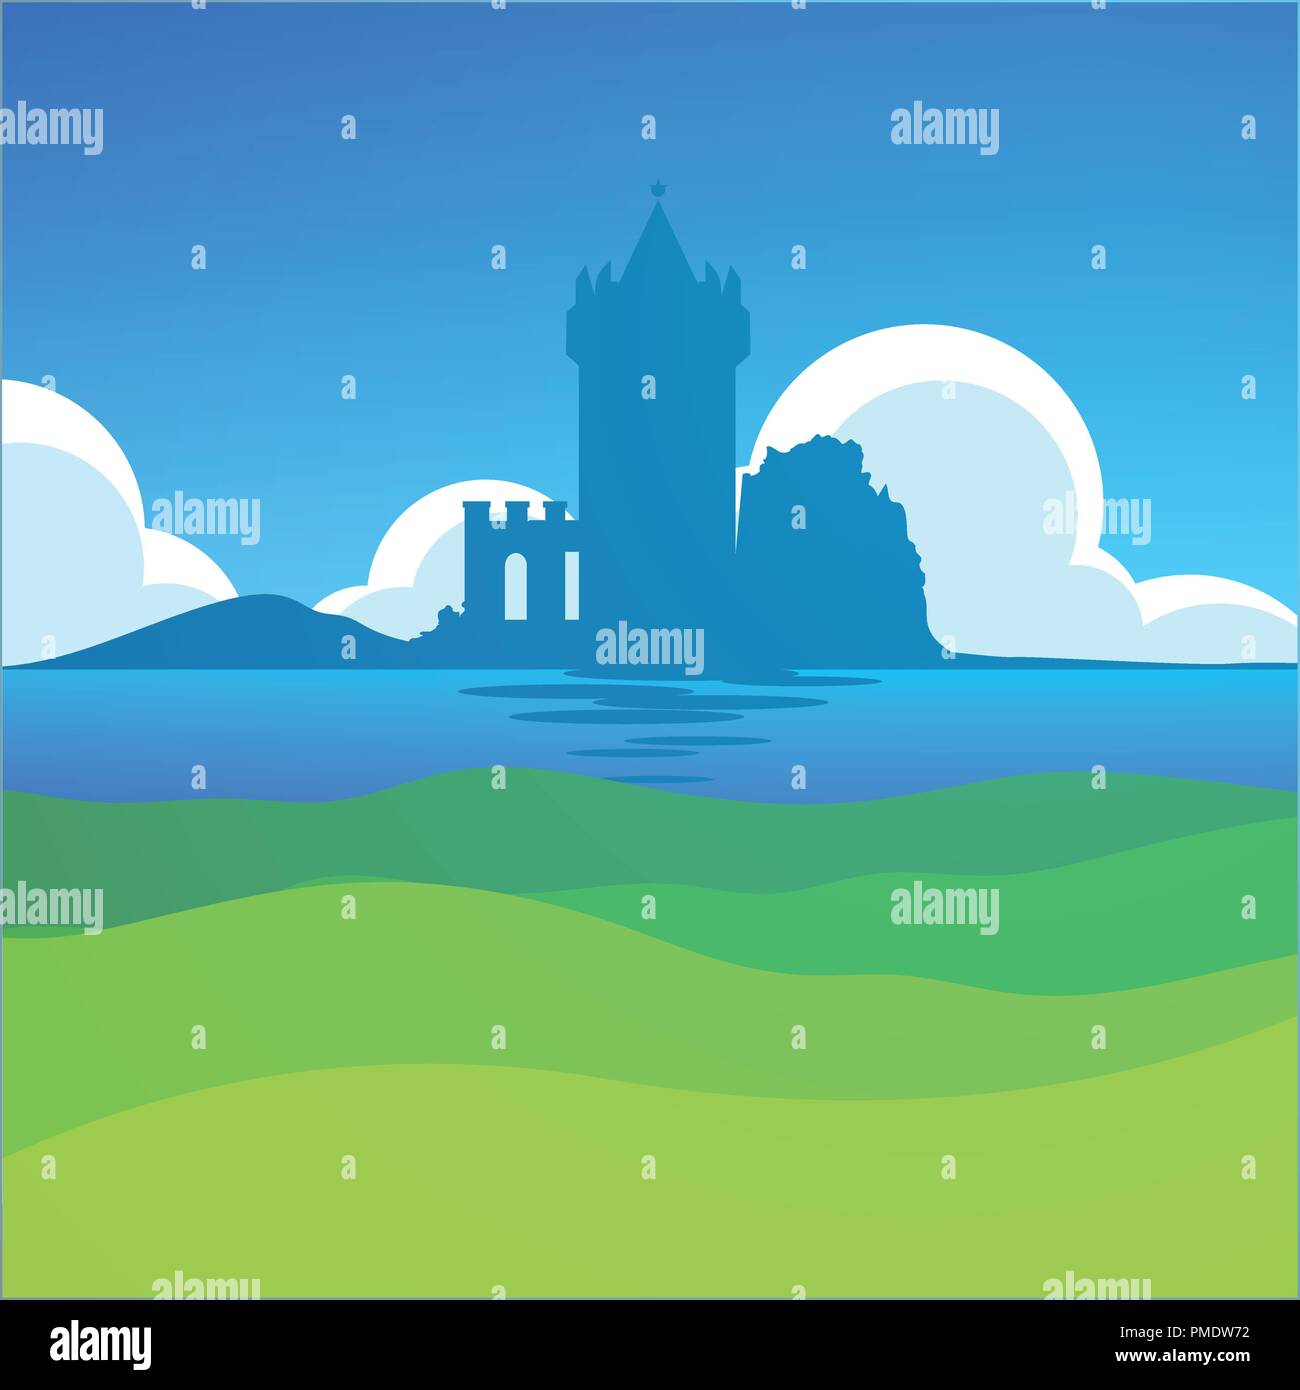 Castle in Falkirk, Scotland - European Scenic Daily Landscape with Medieval theme. - Stock Vector